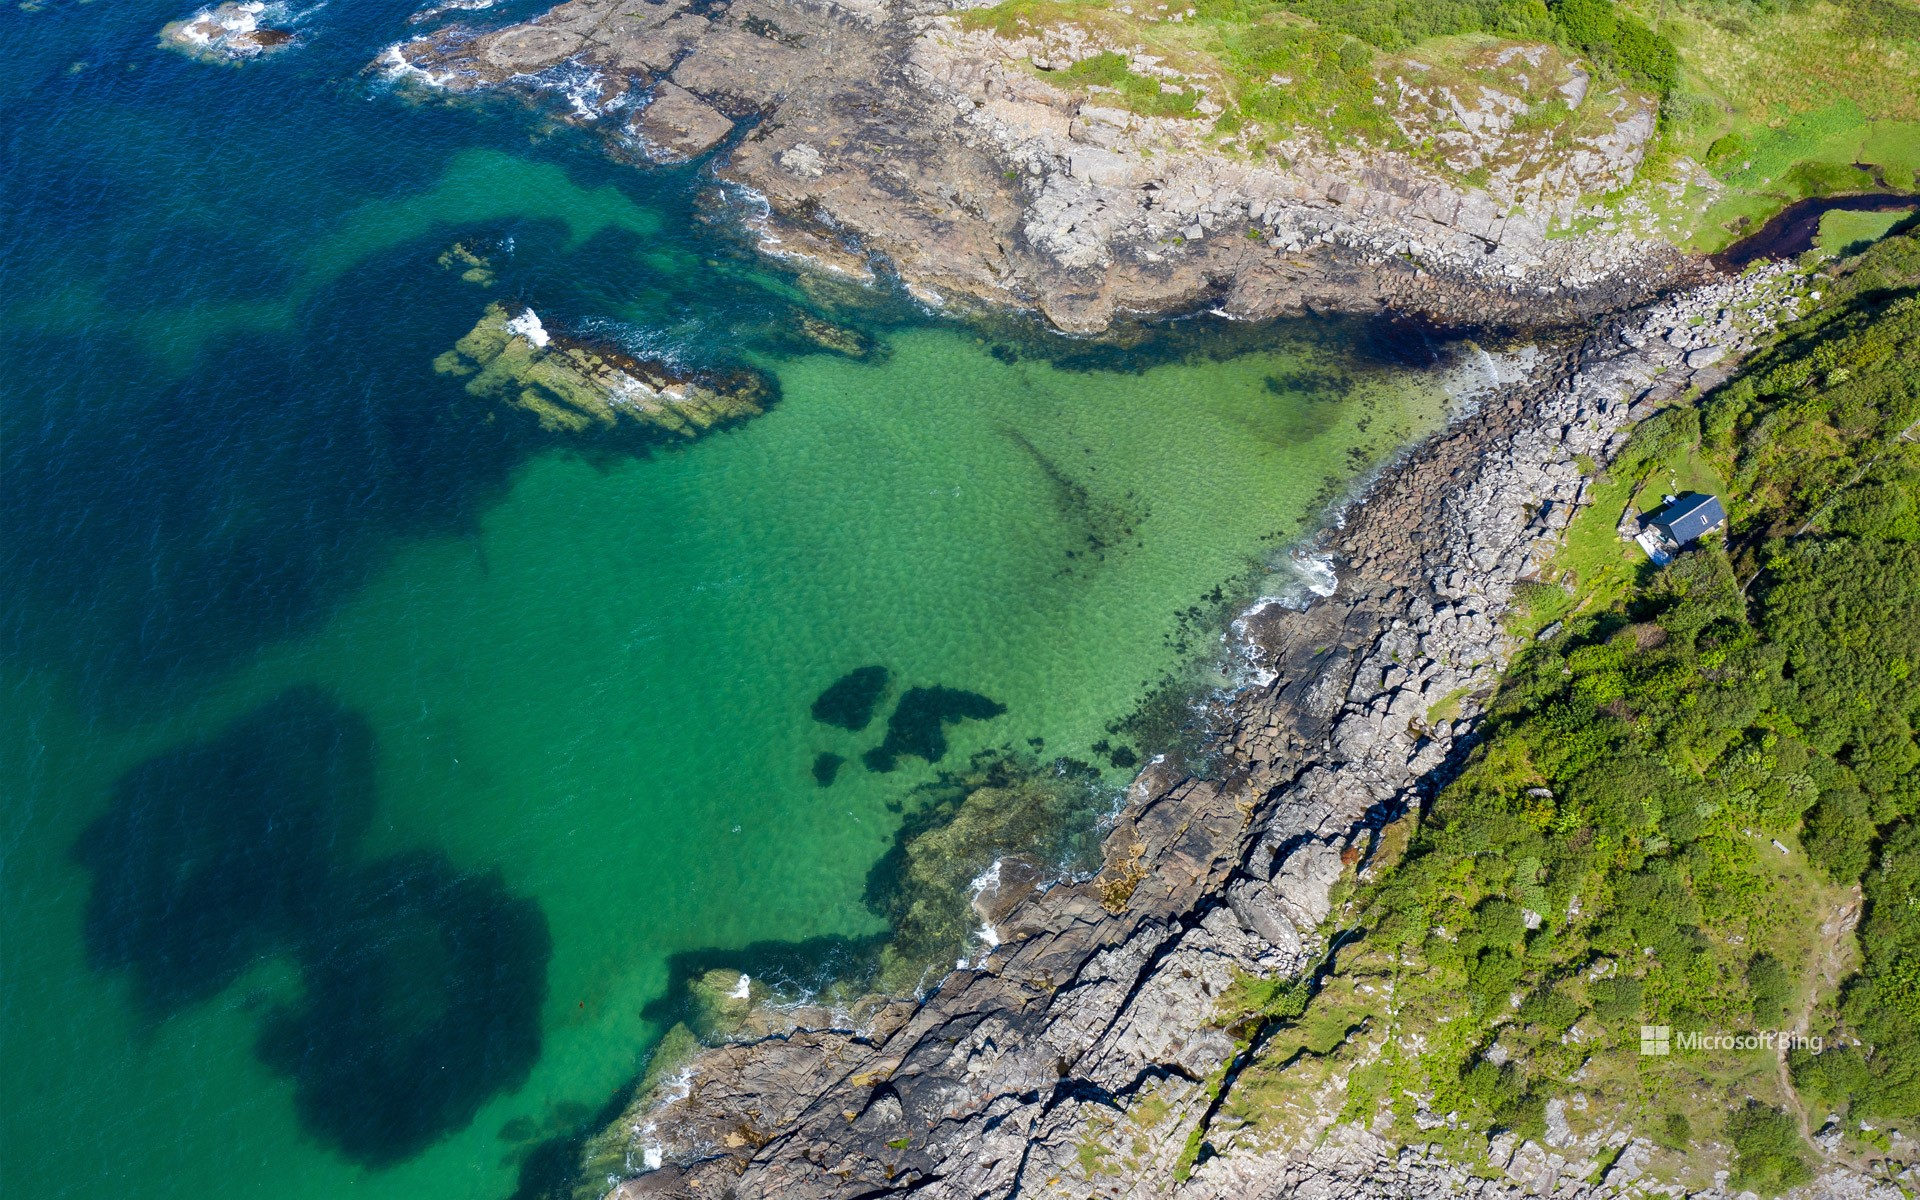 Aerial shot of waves lapping up onto rocks in Portuairk Bay, Ardnamurchan, Lochaber